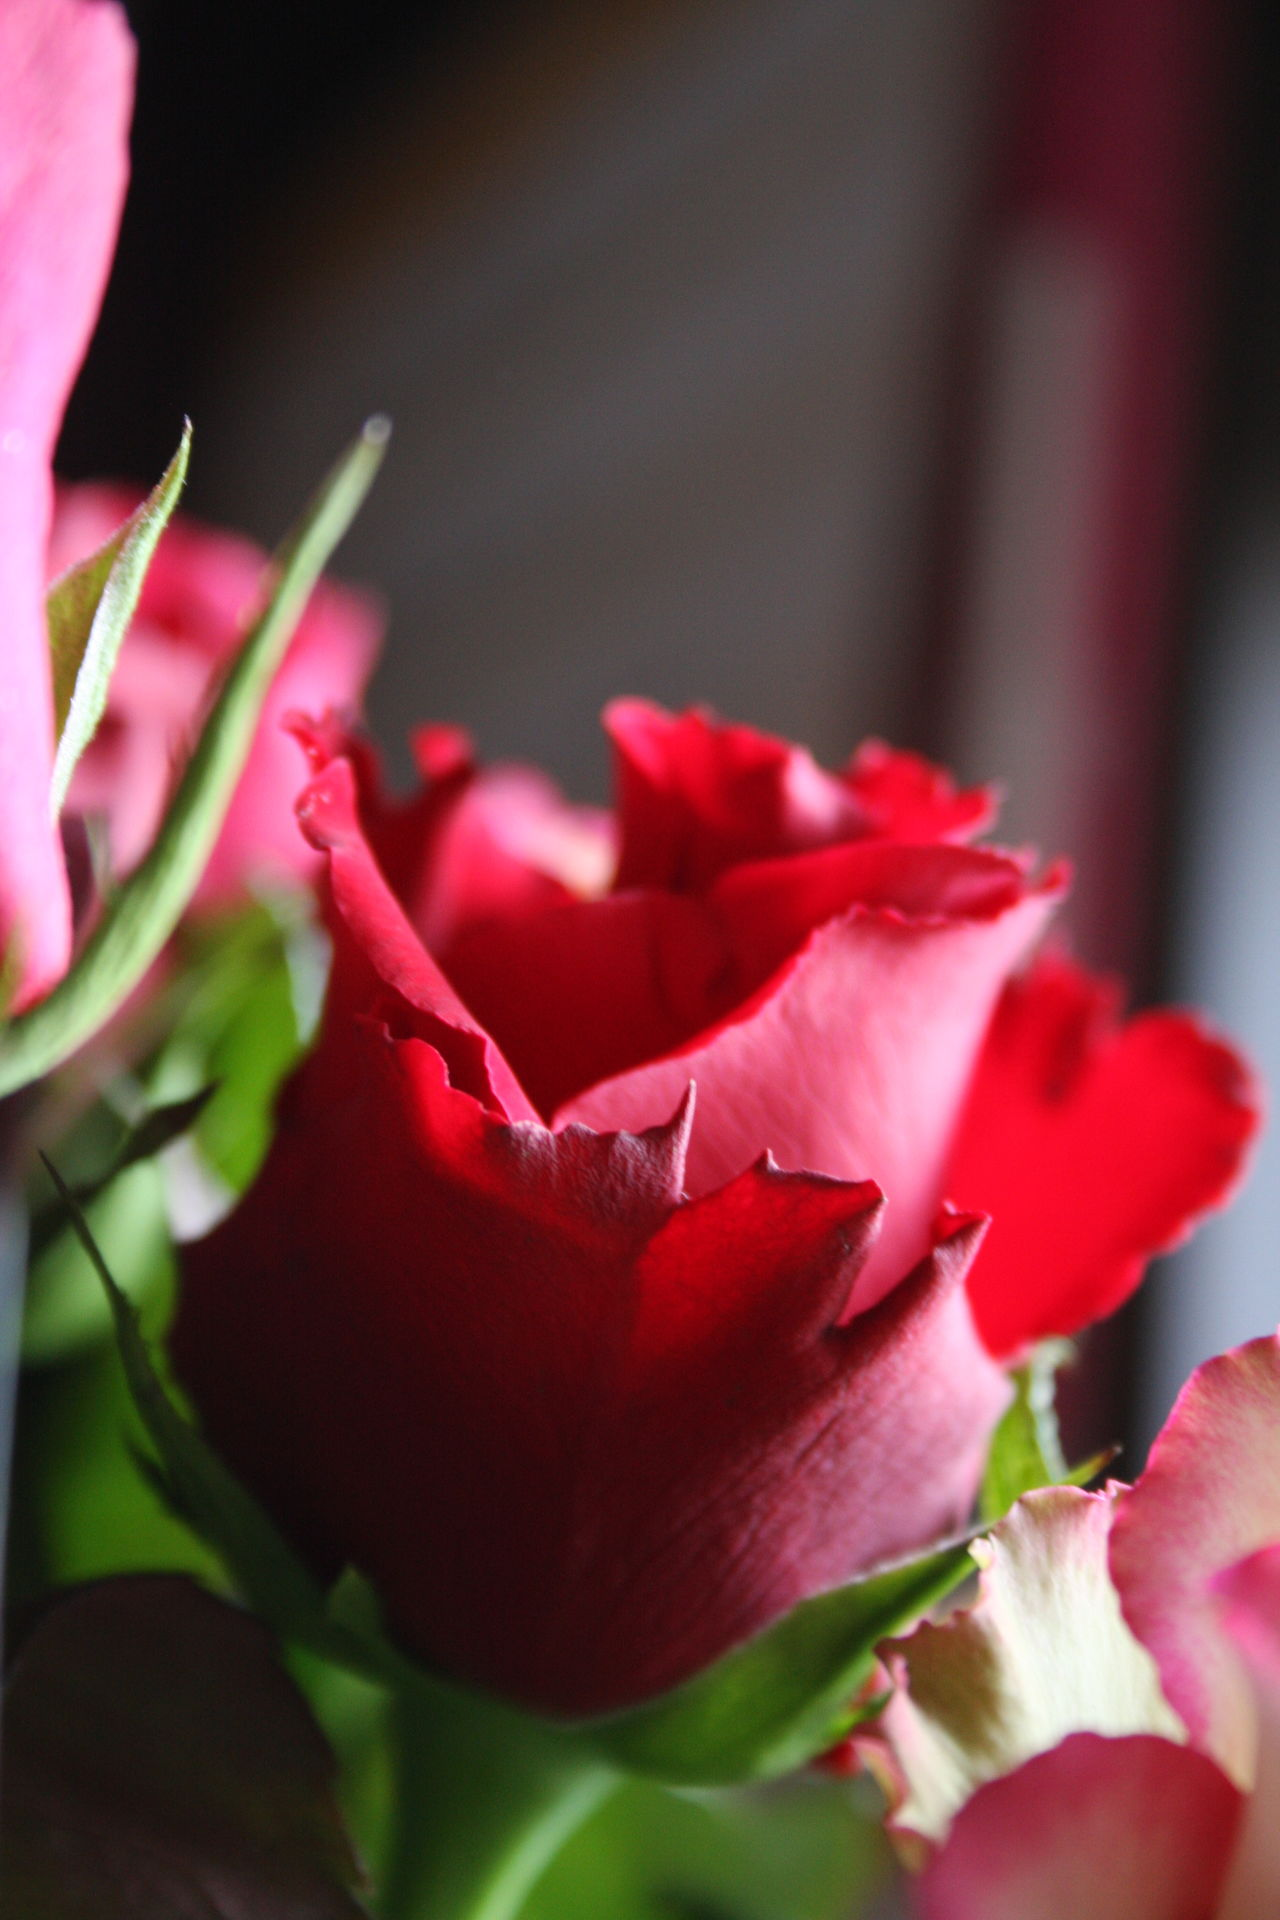 Beauty In Nature Blooming Close-up Day Flower Flower Head Fragility Freshness Growth Love Love ♥ Nature No Filter, No Edit, Just Photography No People Outdoors Petal Plant Red Rose - Flower Roses Roses Are Red Roses Flowers  Roses🌹 Valentine Valentine's Day